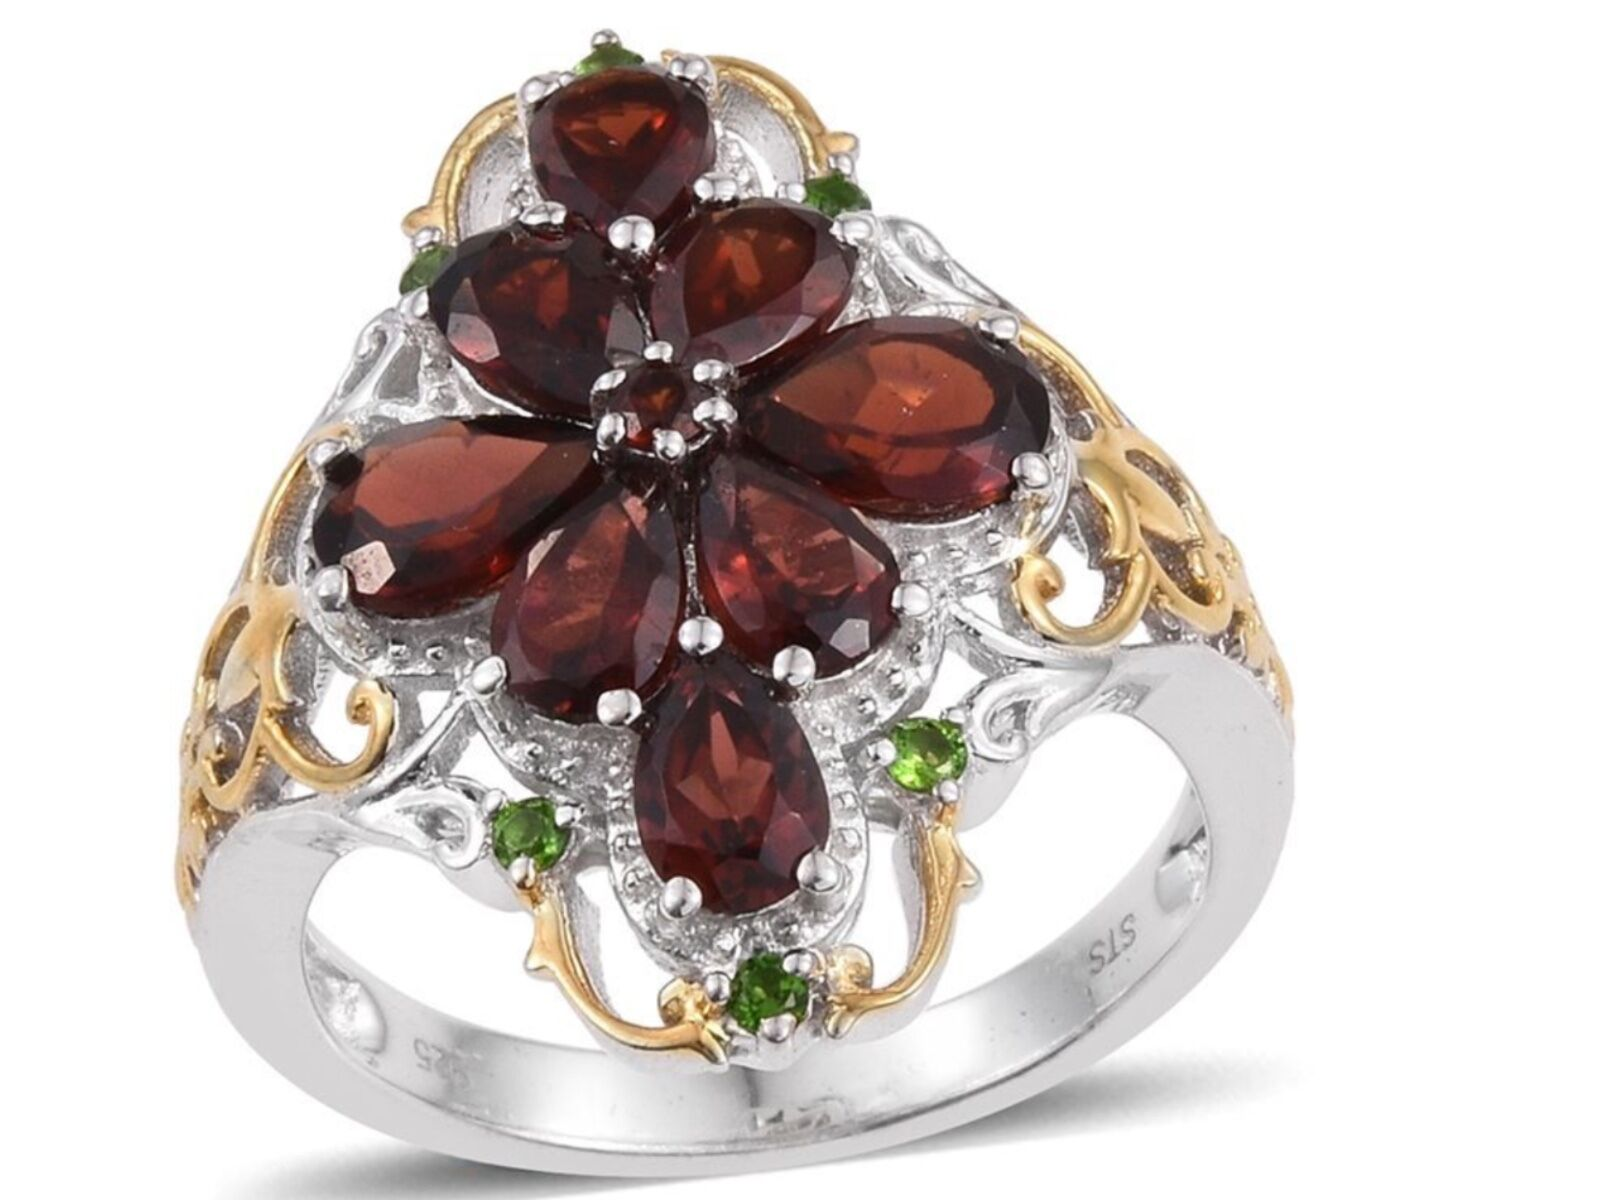 Mozambique Garnet and Russian Diopside Ring